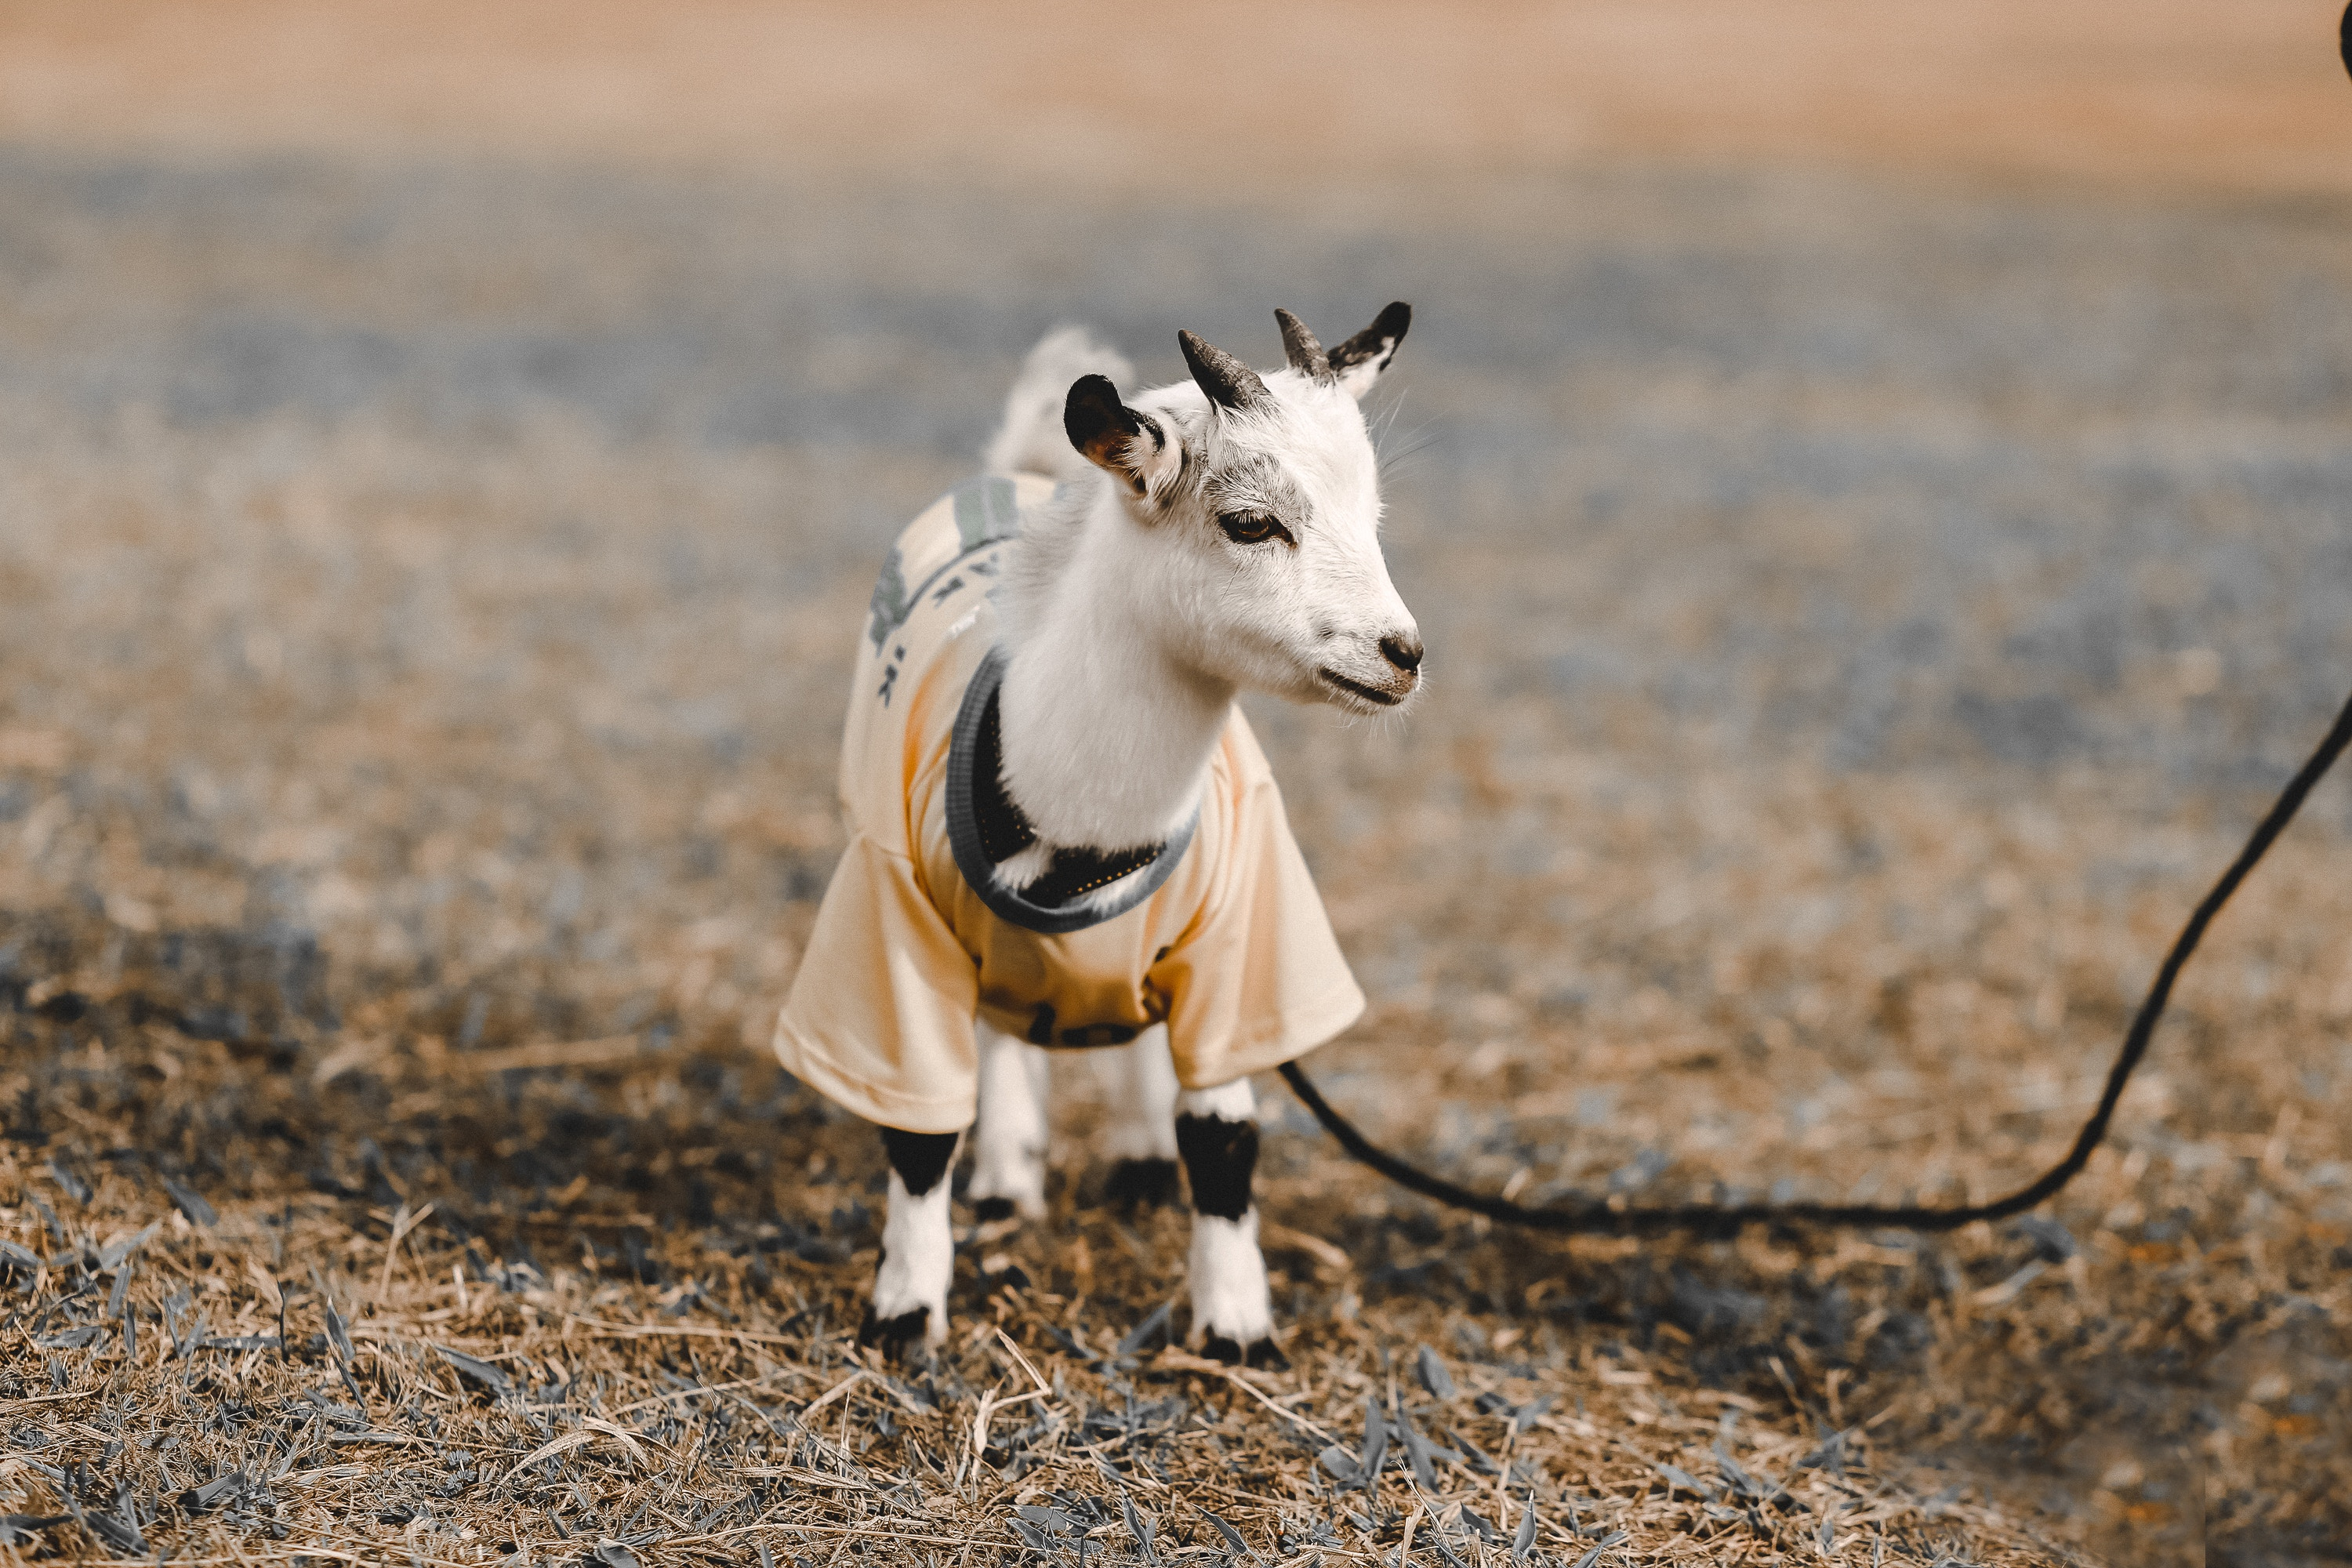 Sorry, no matter how cute the outfit is, goats don't count as emotional support animals aboard WestJet!